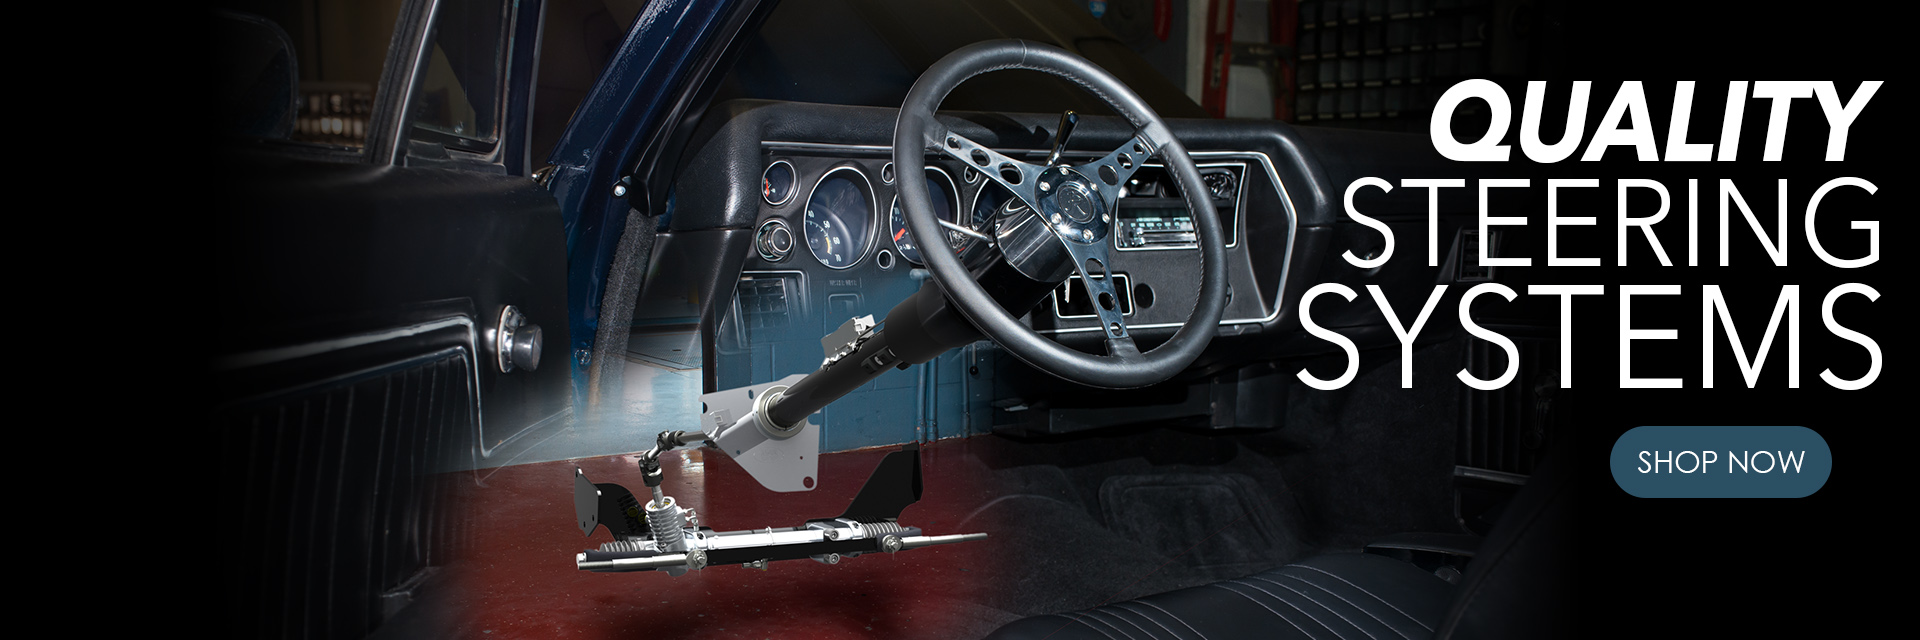 Quality steering systems